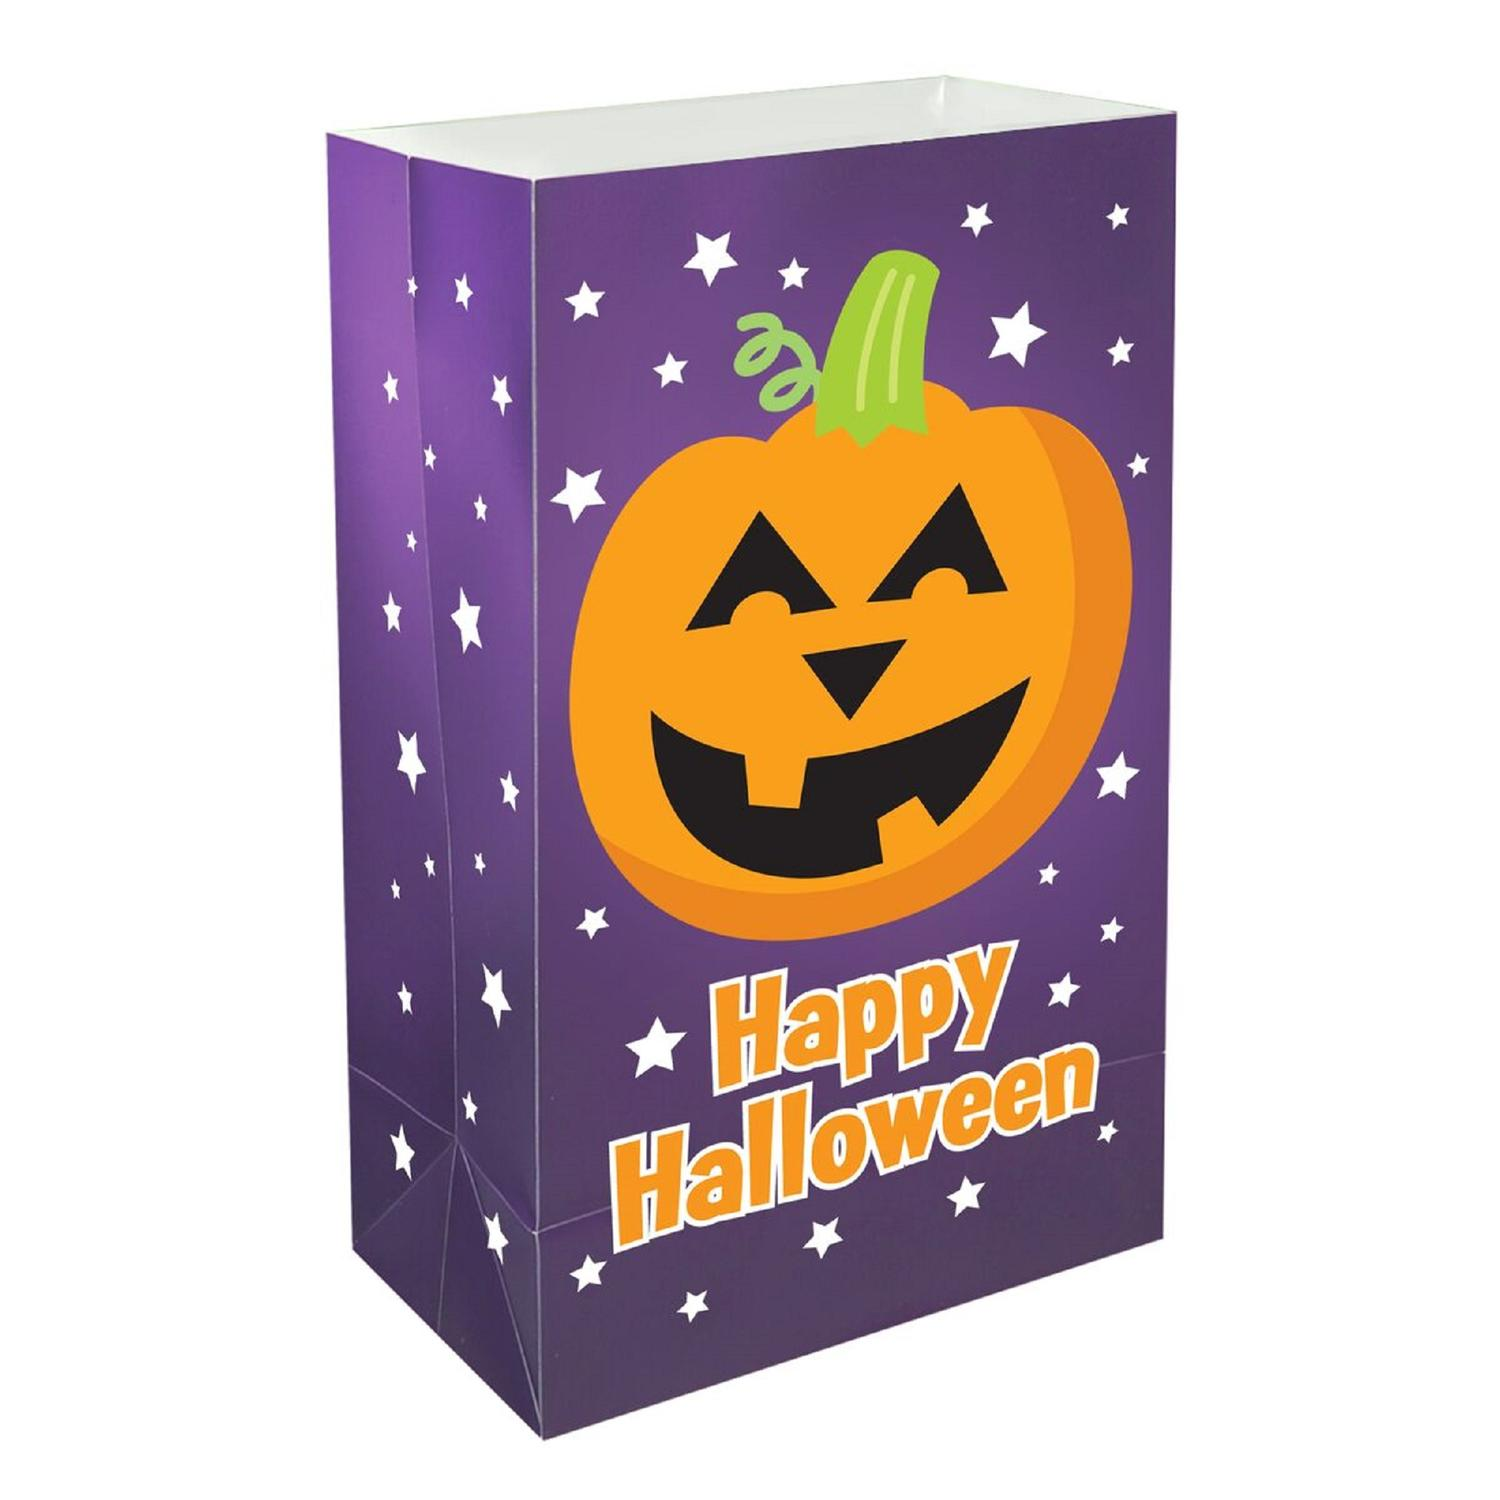 Pack of 12 Traditional Weather Resistant Happy Halloween Pumpkin Luminaria Bags 10""